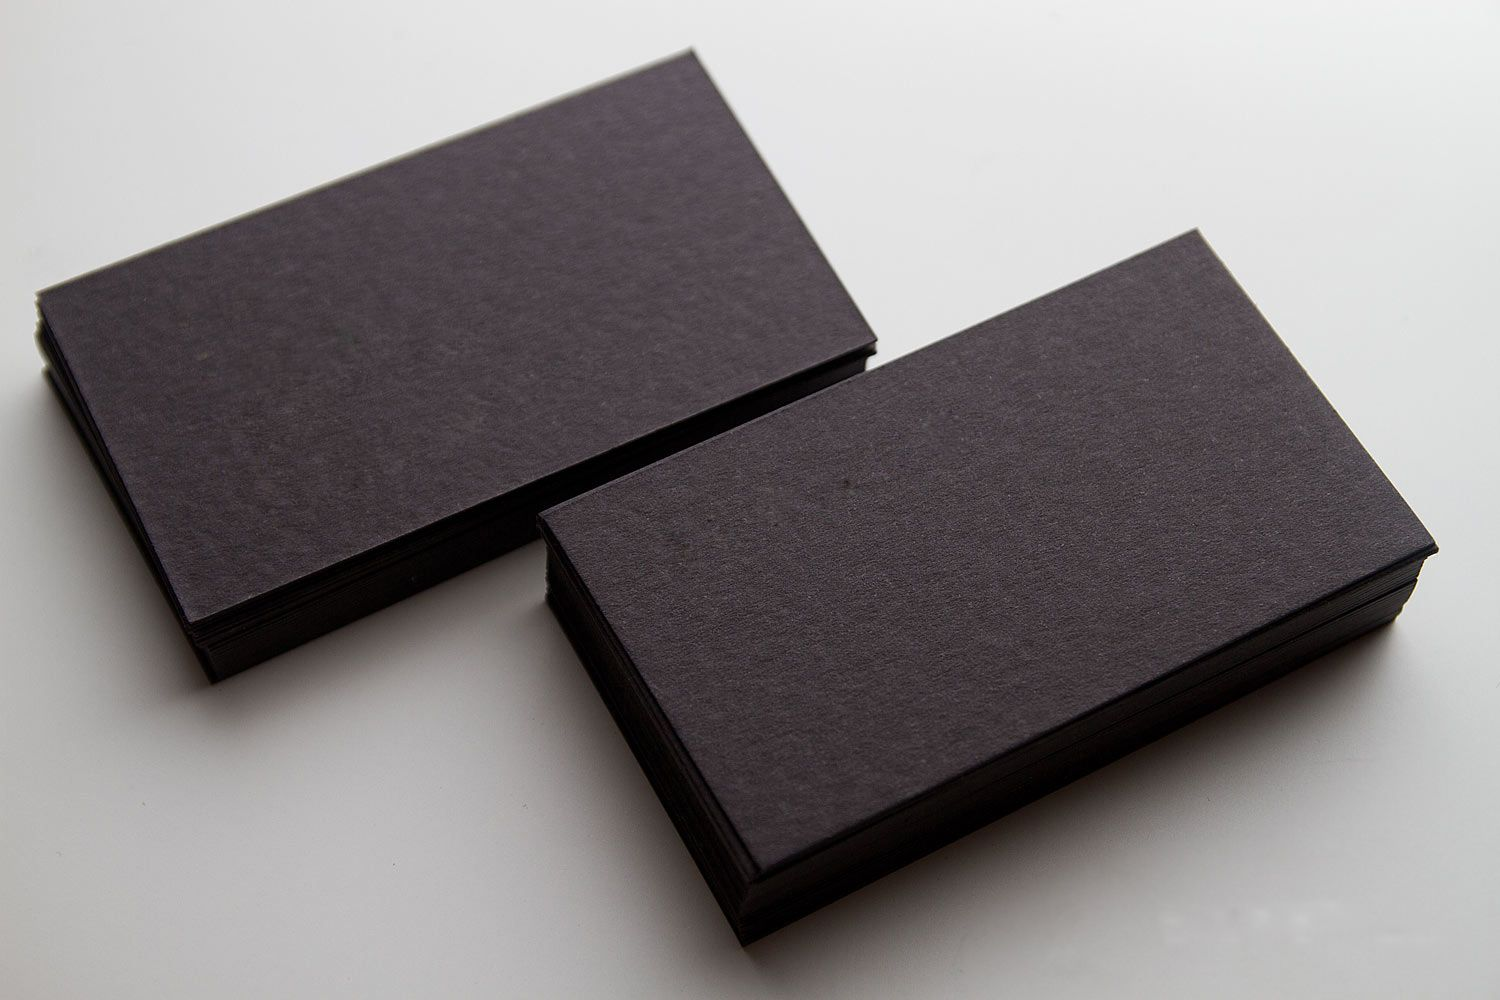 Blank black business cards | Branding | Pinterest | Black business ...